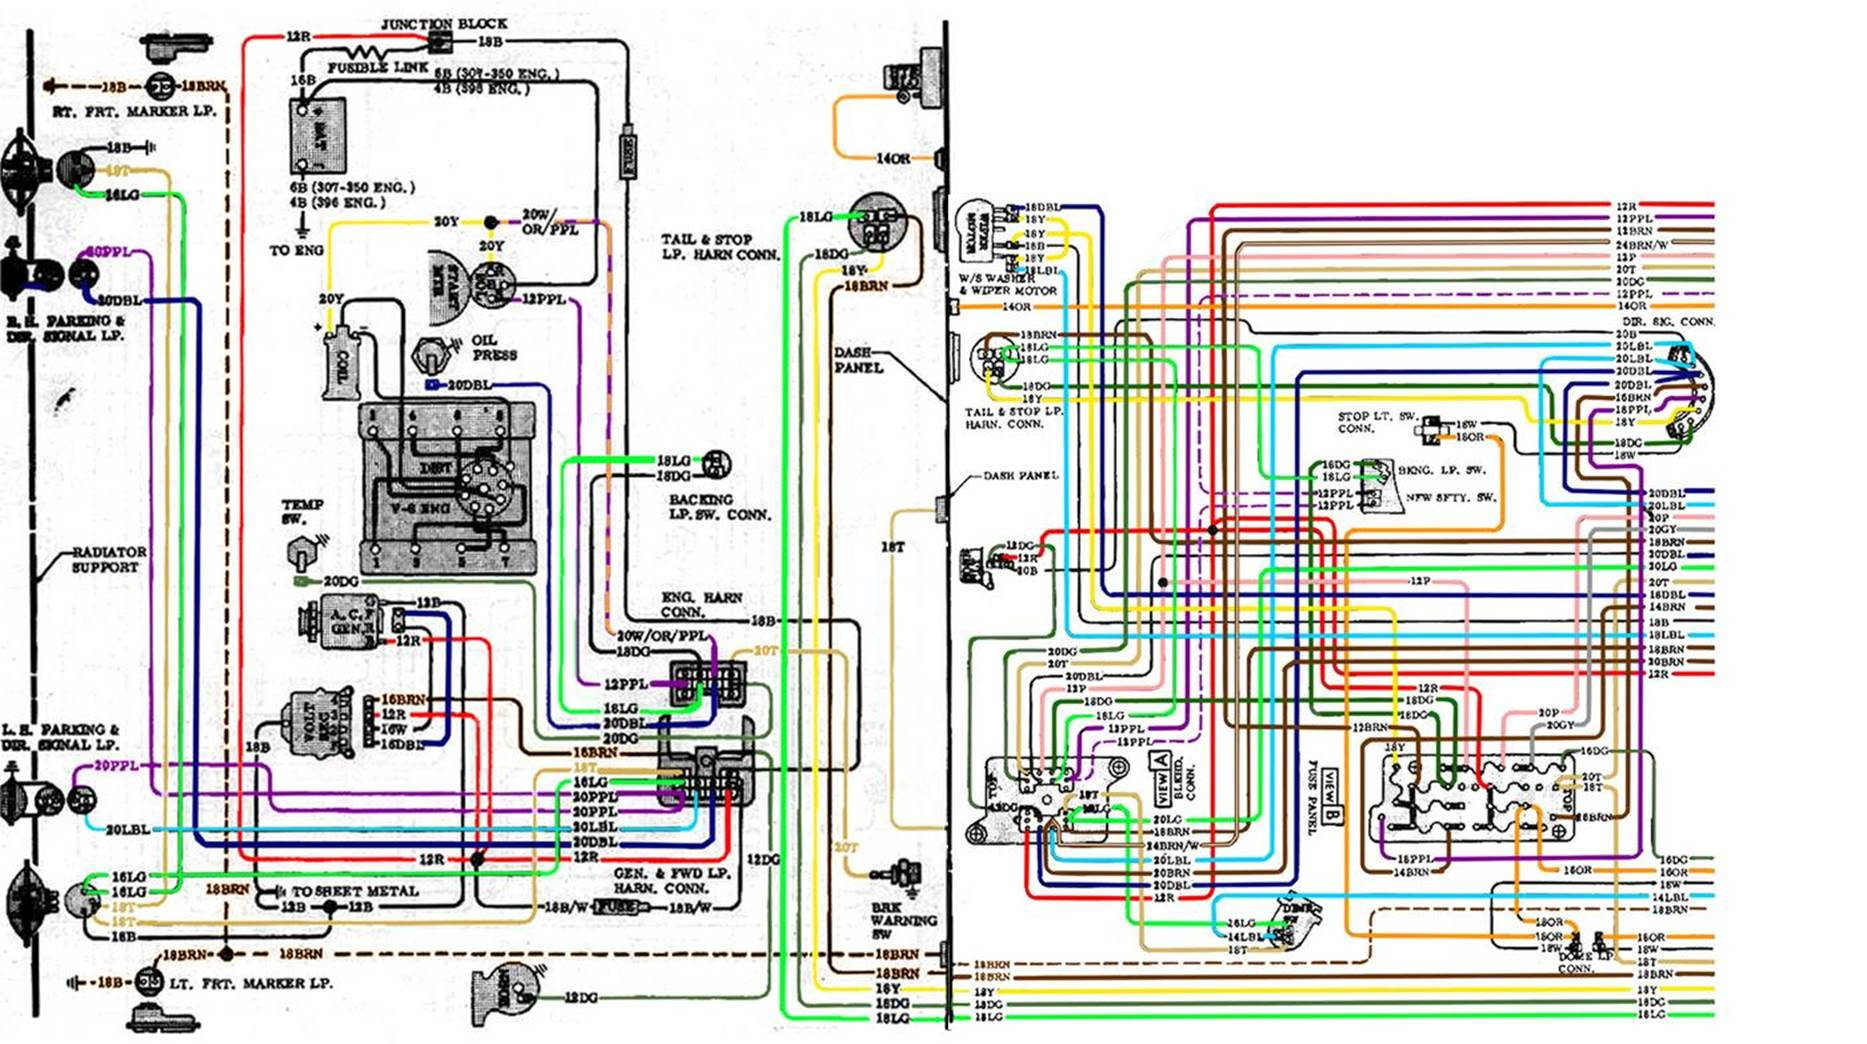 image002 67 72 chevy wiring diagram 67 72 c10 wiring harness at n-0.co